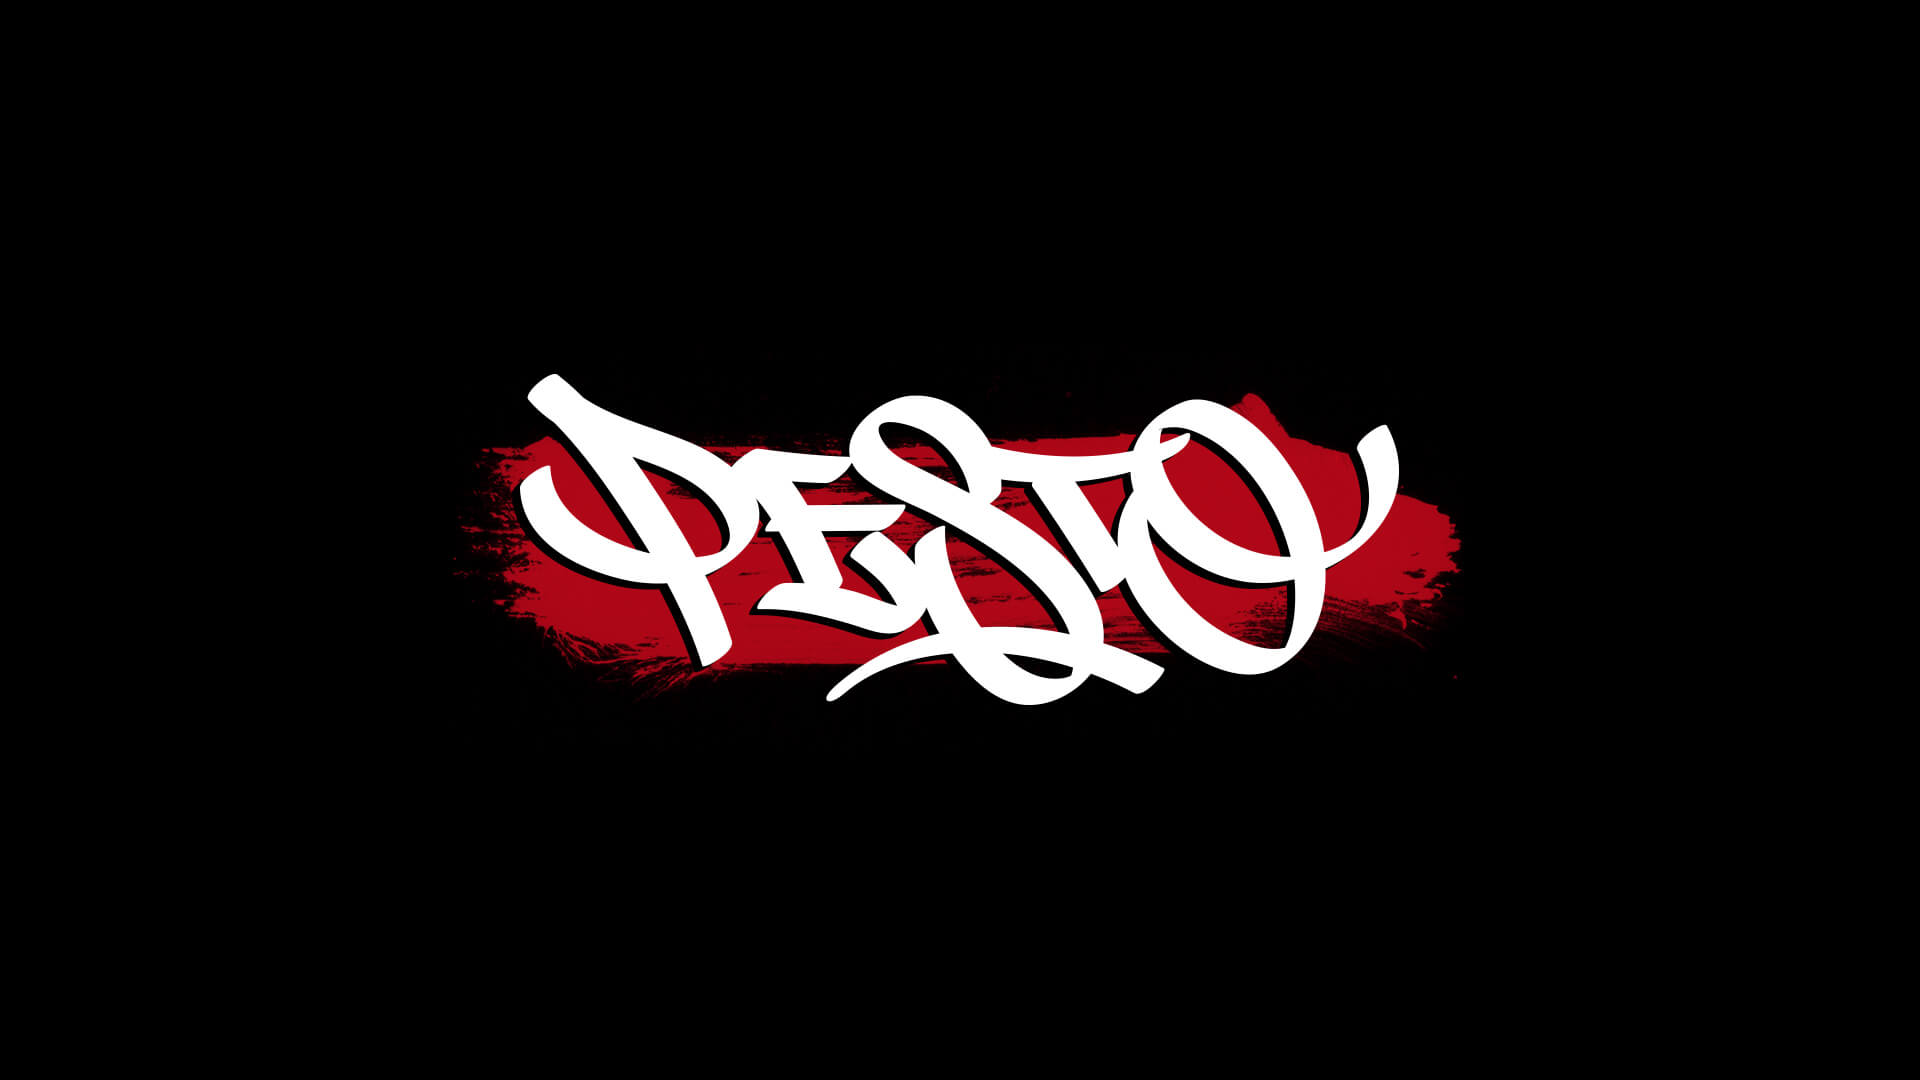 bandits-tag-graffitti-hiphop-breackdance-Pesto